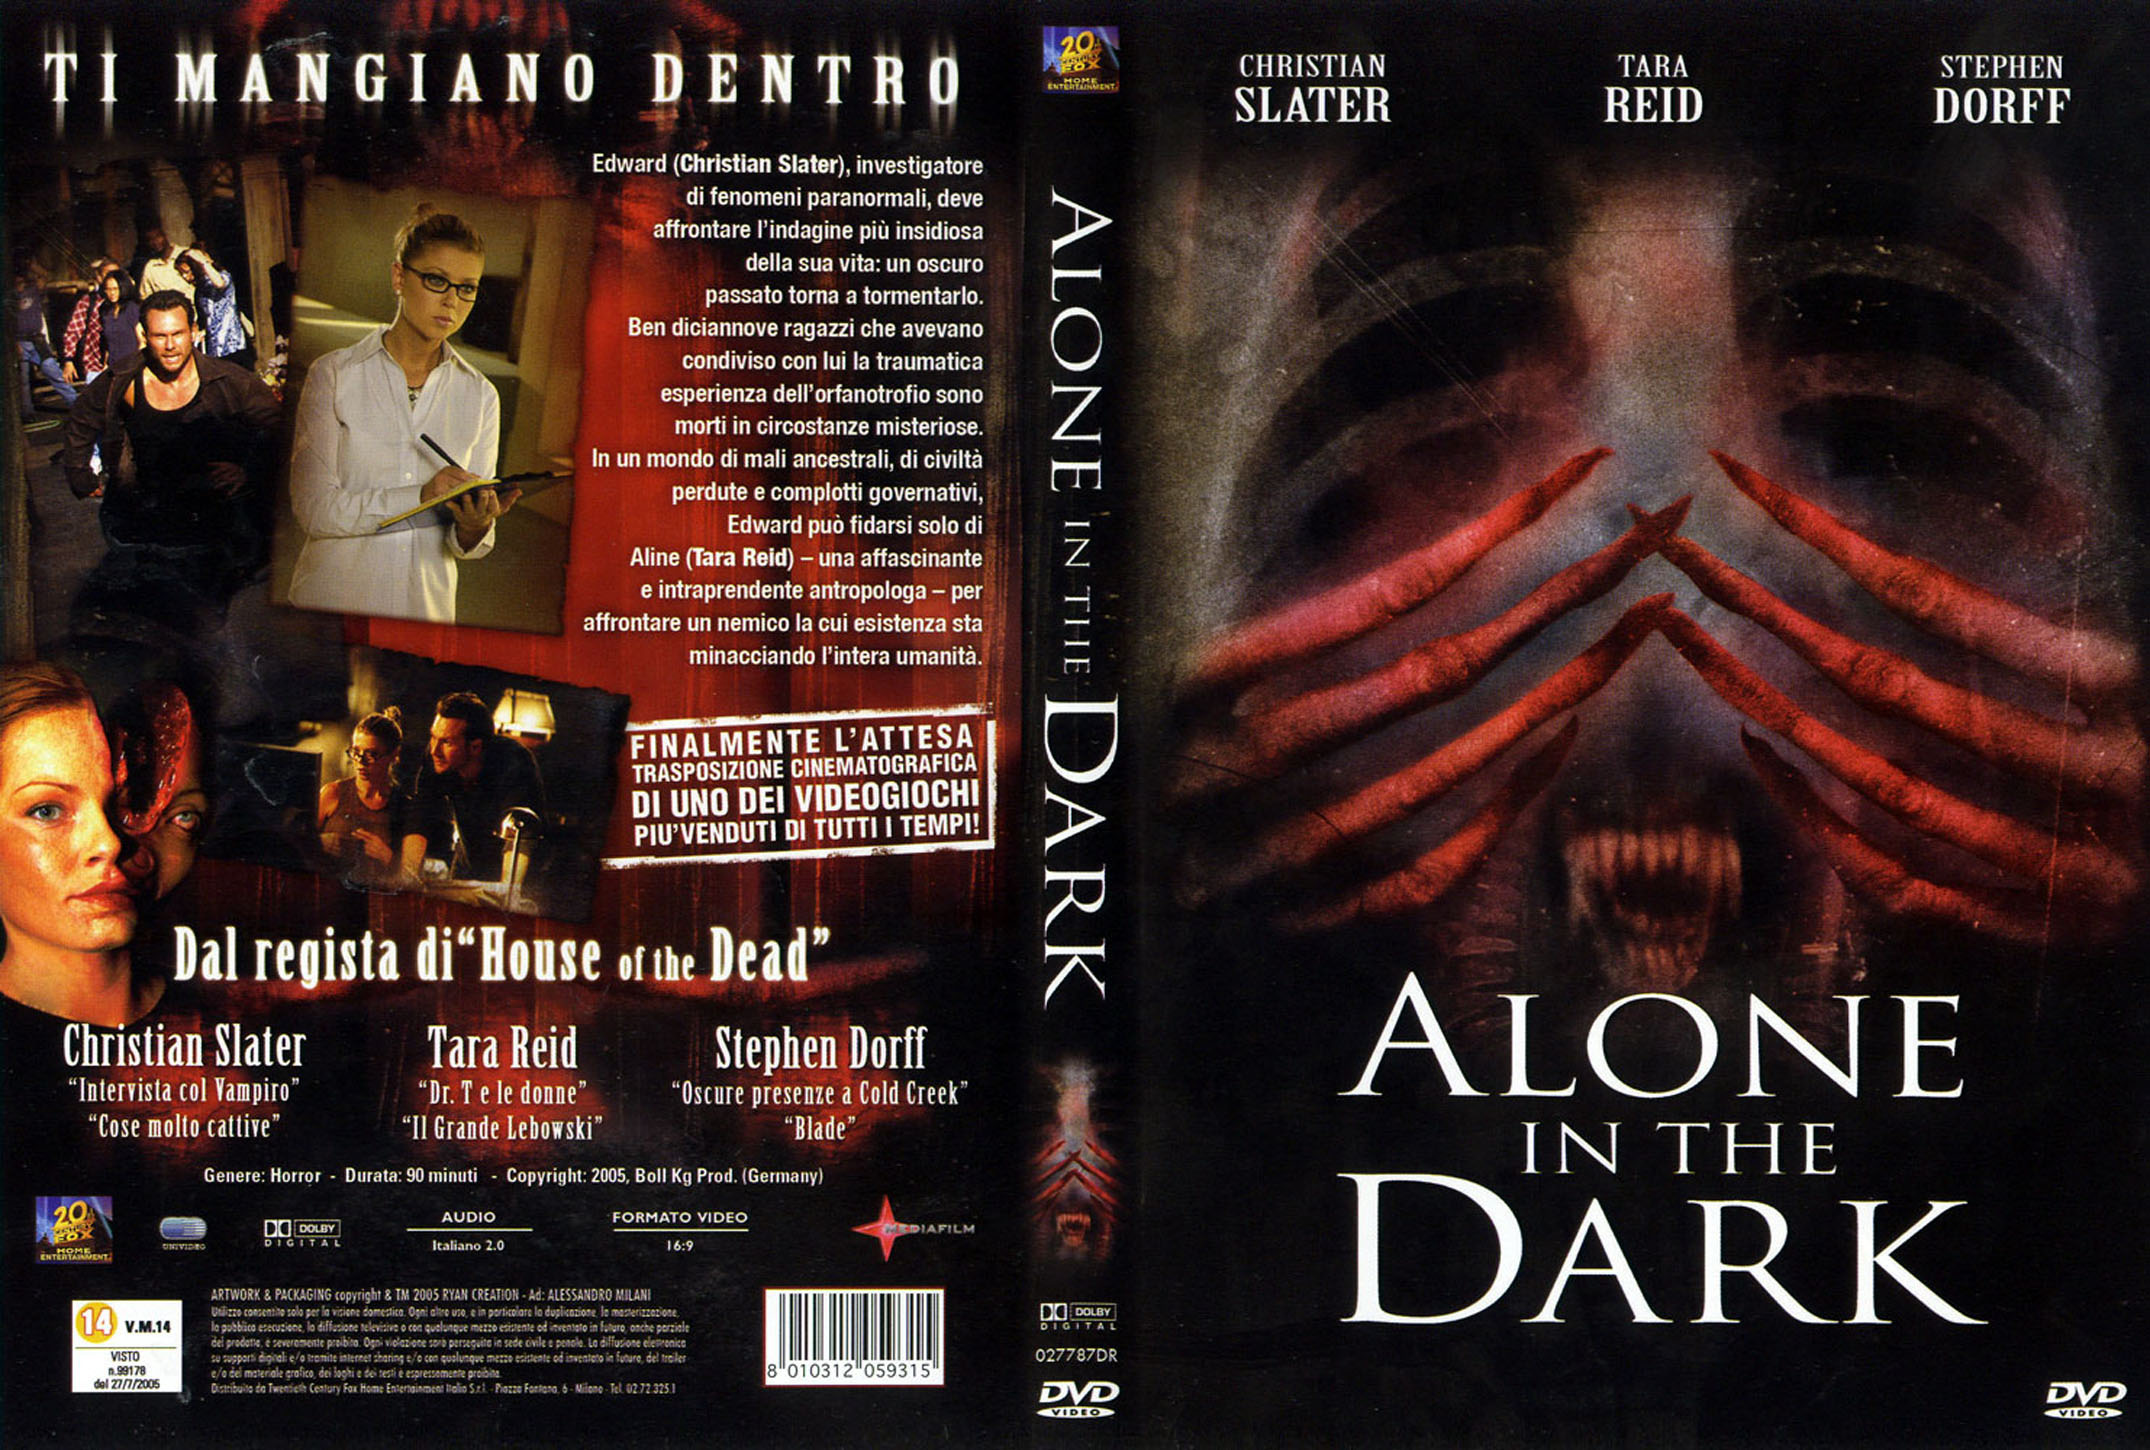 alone_in_the_dark-ita